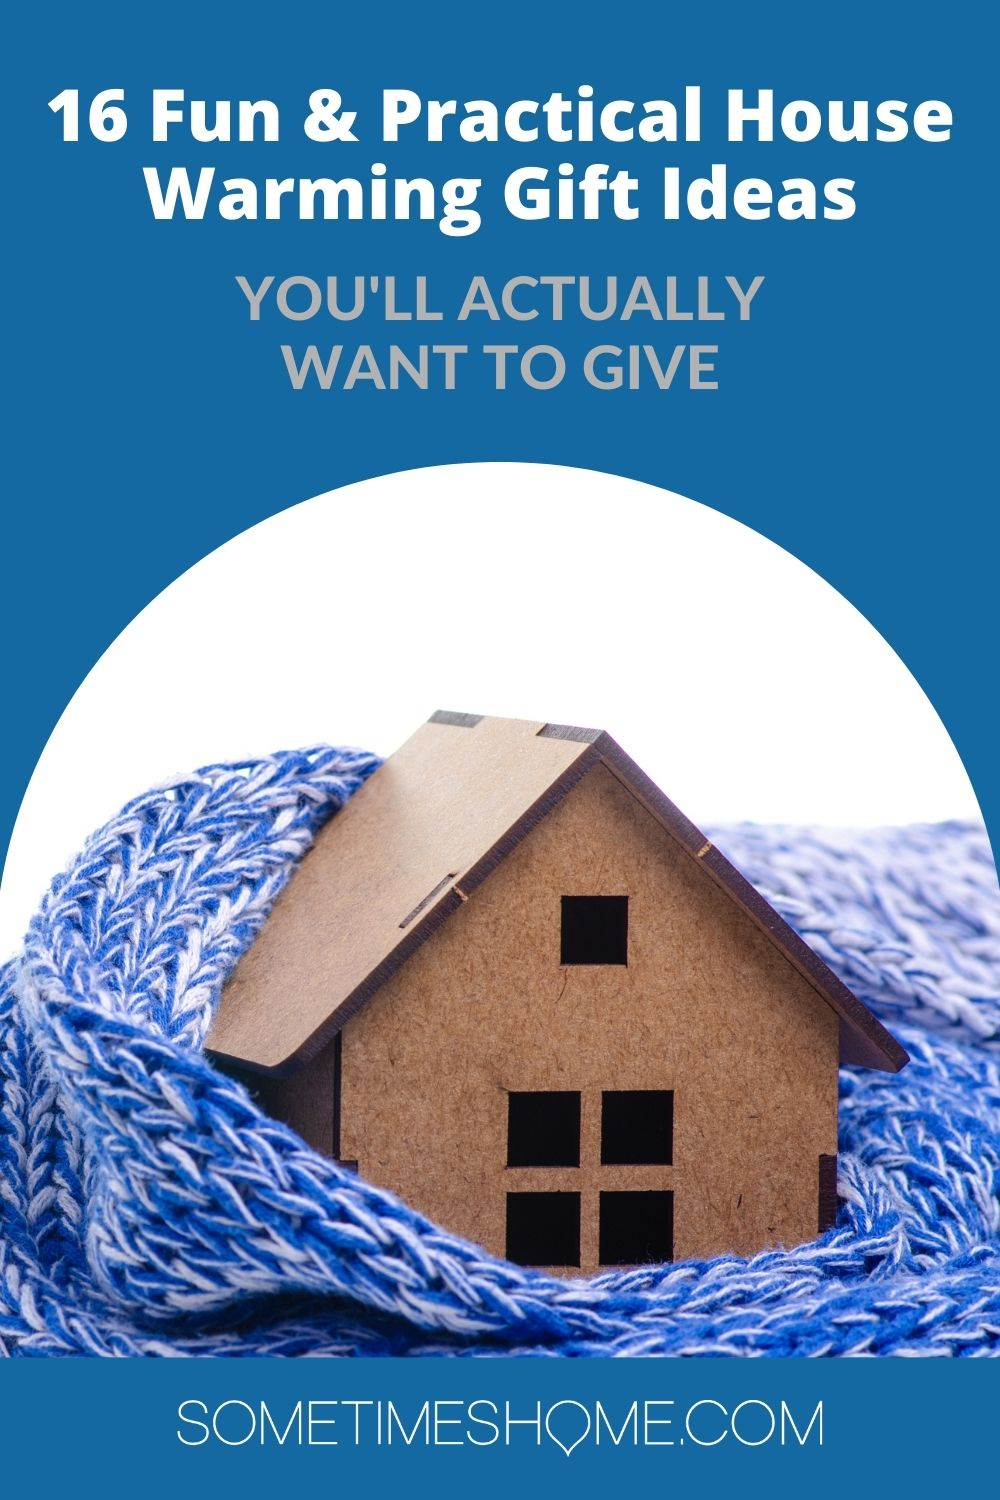 Pinterest image for practical house warming gifts with a photo of a house model in a scarf.